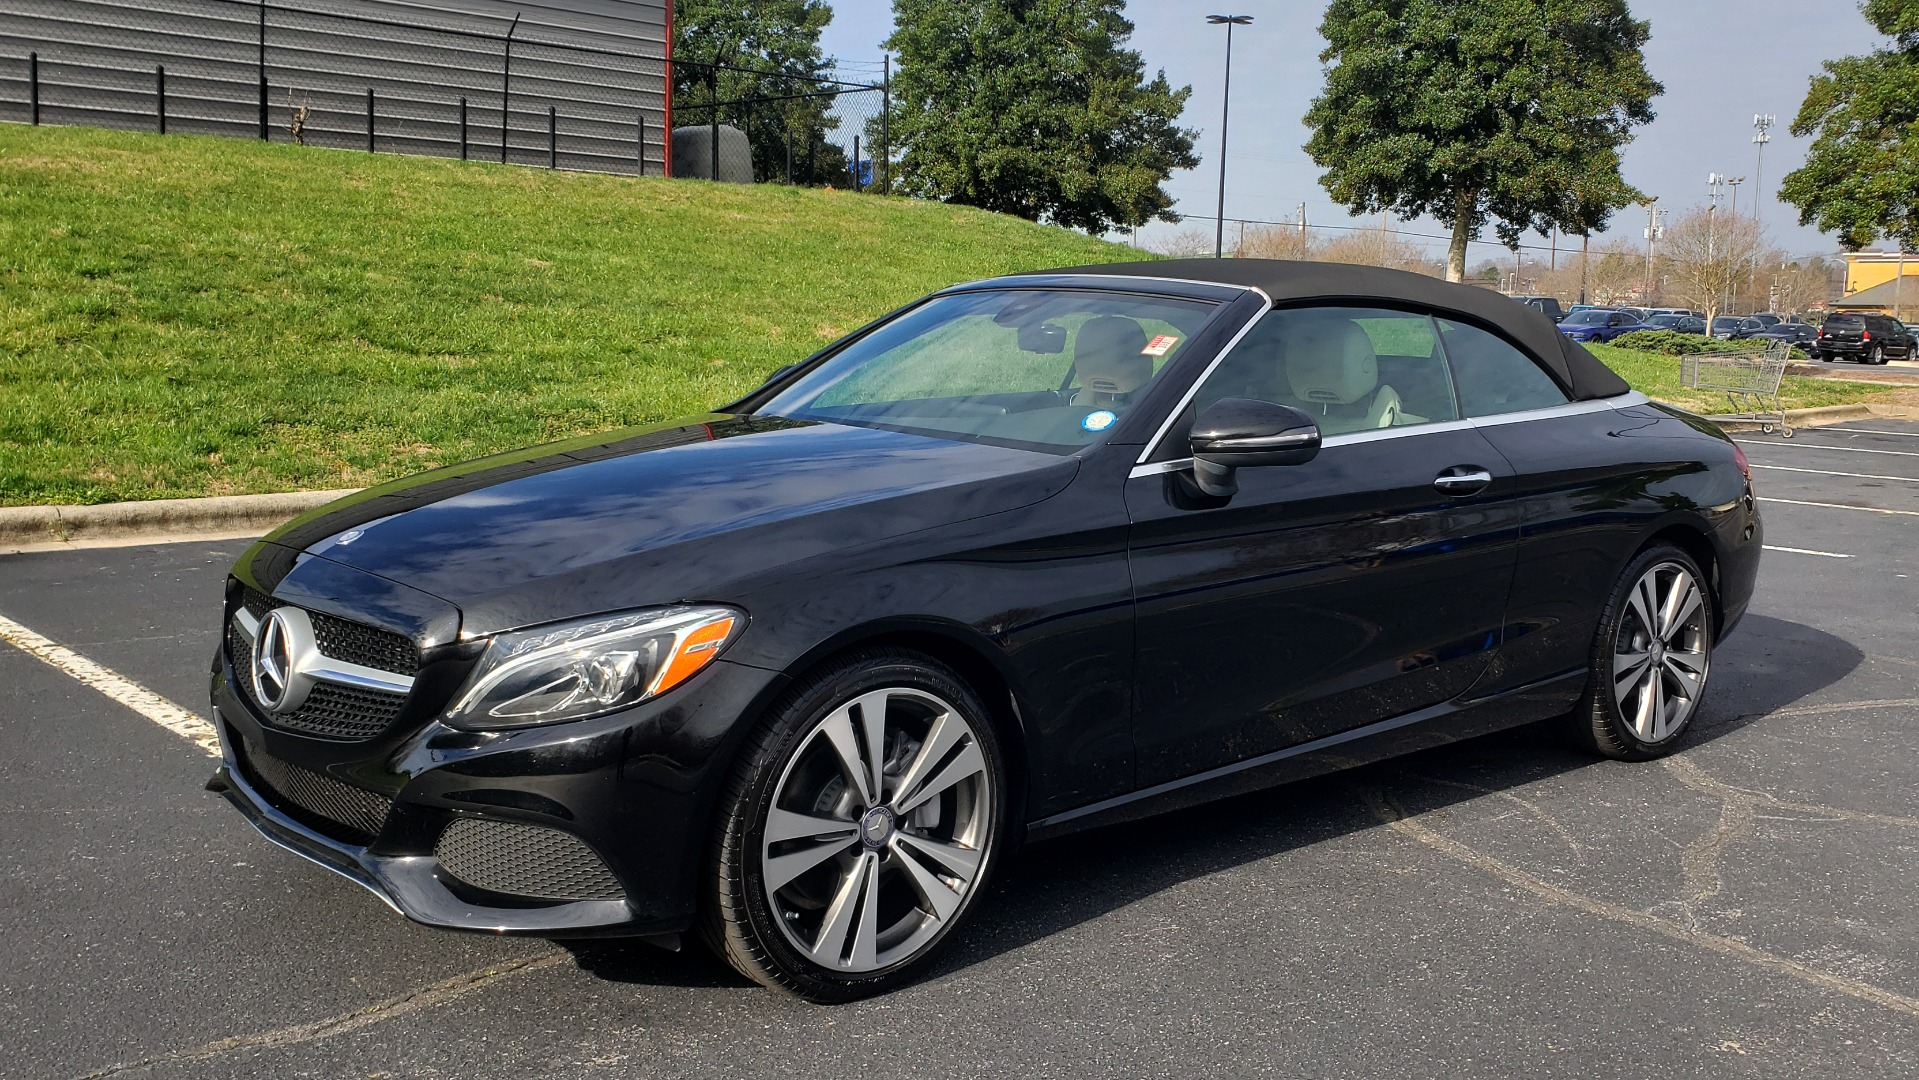 Used 2017 Mercedes-Benz C-Class C 300 CABRIOLET SPORT / PREMIUM / NAV / BURMESTER SOUND for sale Sold at Formula Imports in Charlotte NC 28227 2